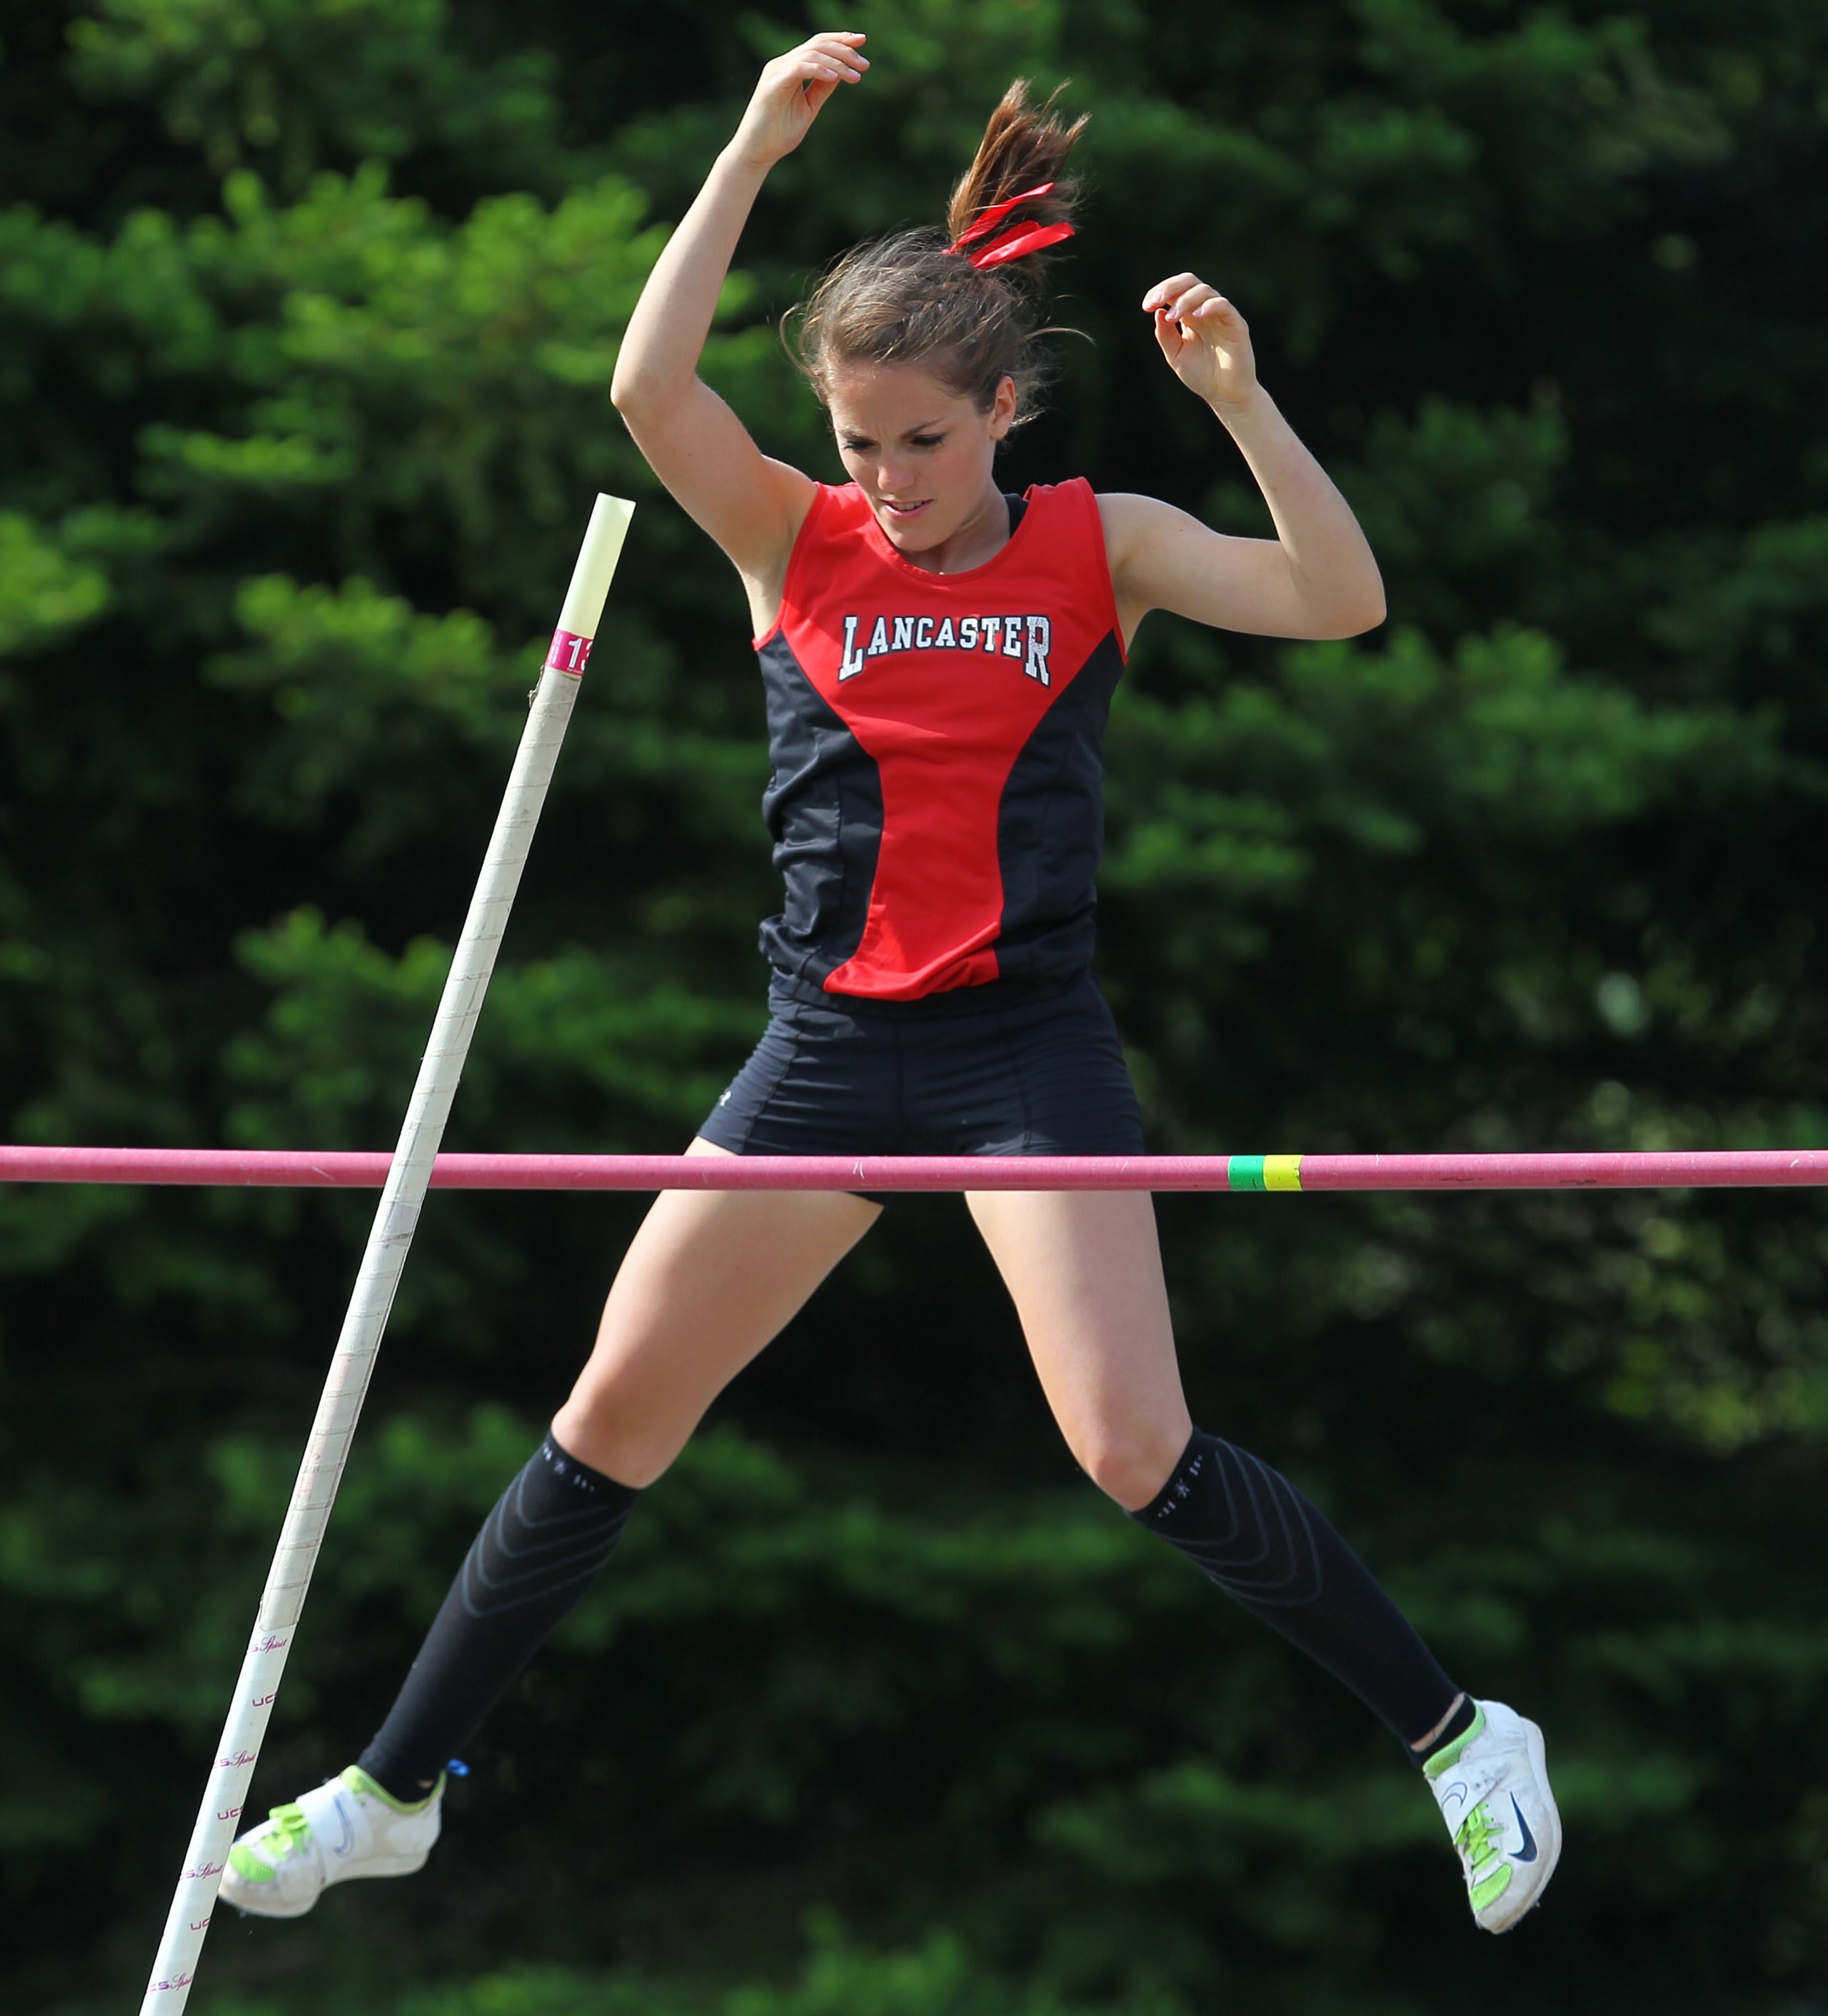 Lancaster senior Jenn Thill won the Section VI title in the Division I pole vault clearing a season-best 12 feet, 3 inches.